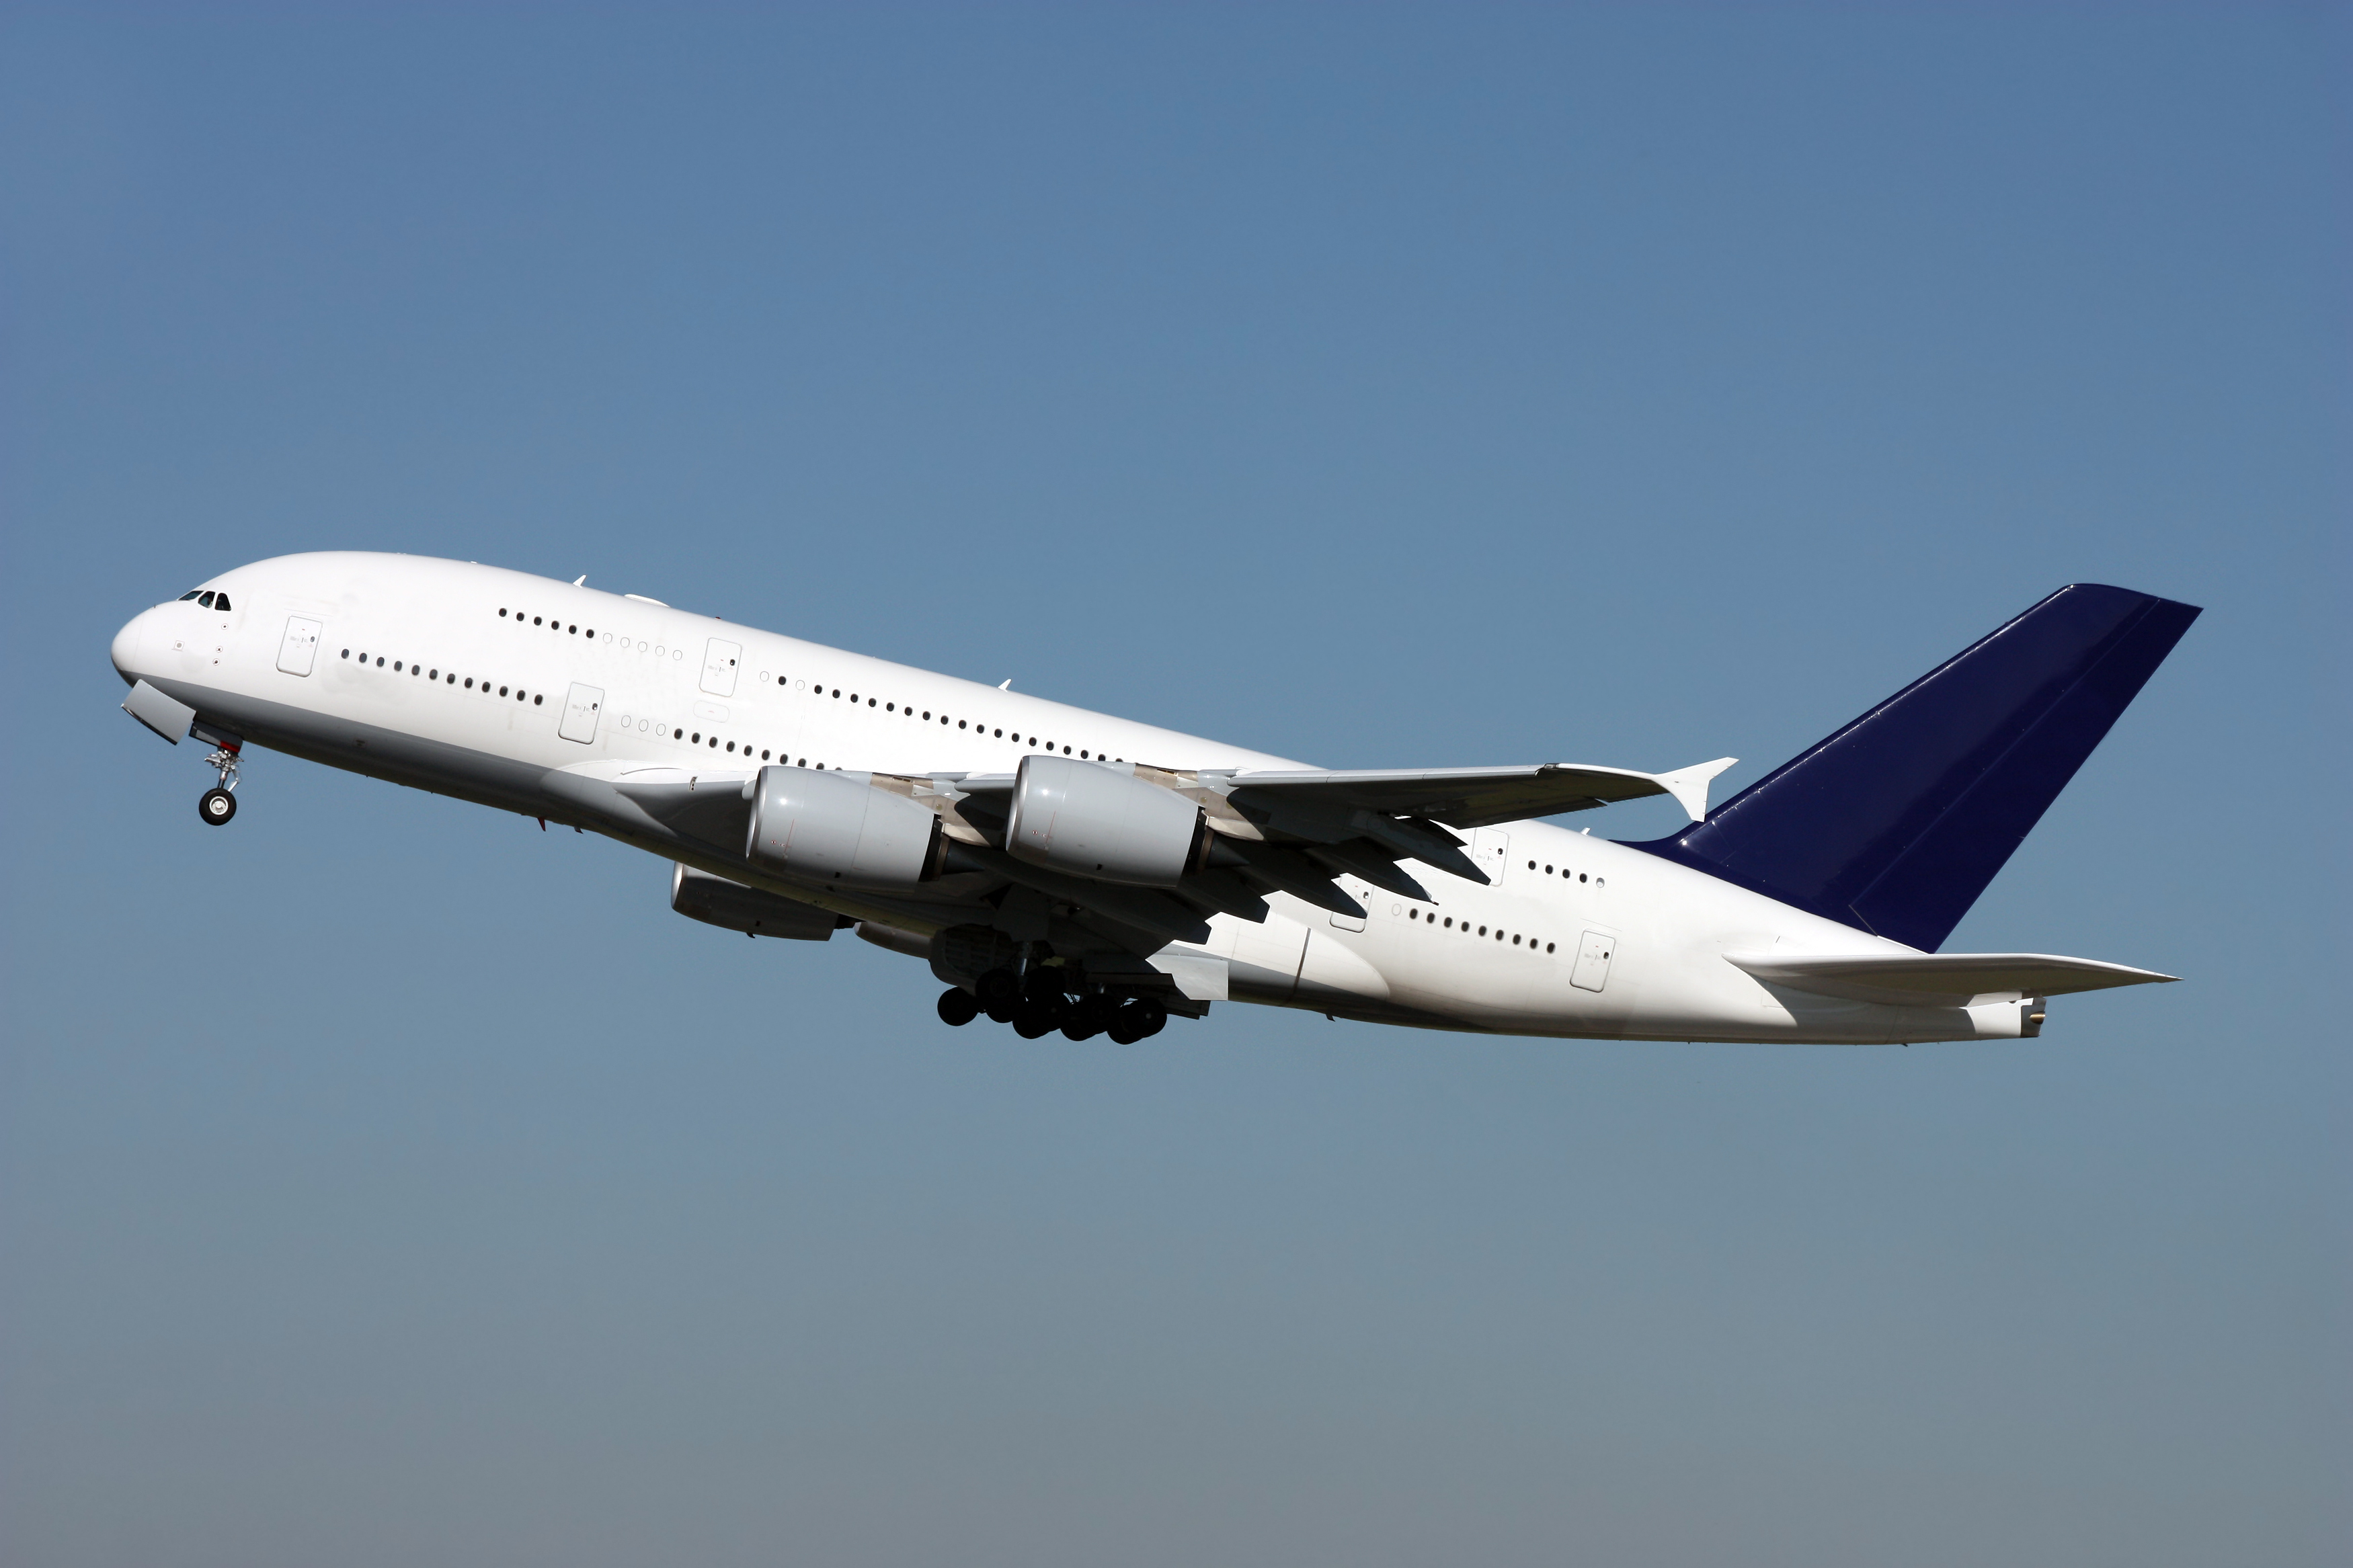 Take care of your health on long haul flights